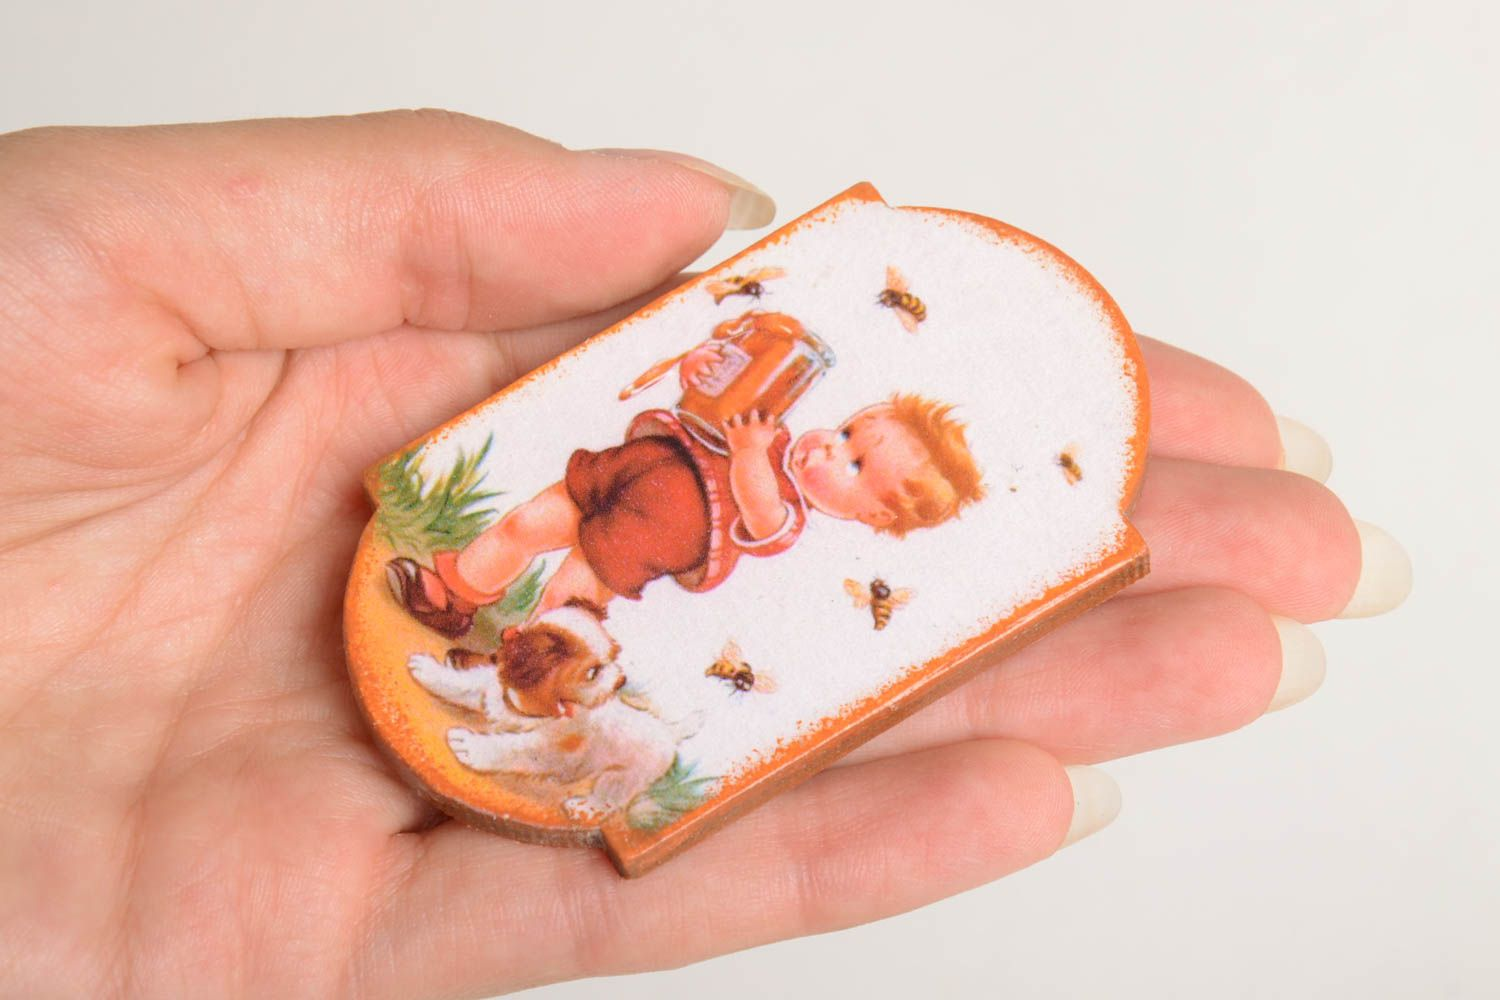 Unusual handmade magnet cool fridge magnets kitchen supplies decorative use only photo 4